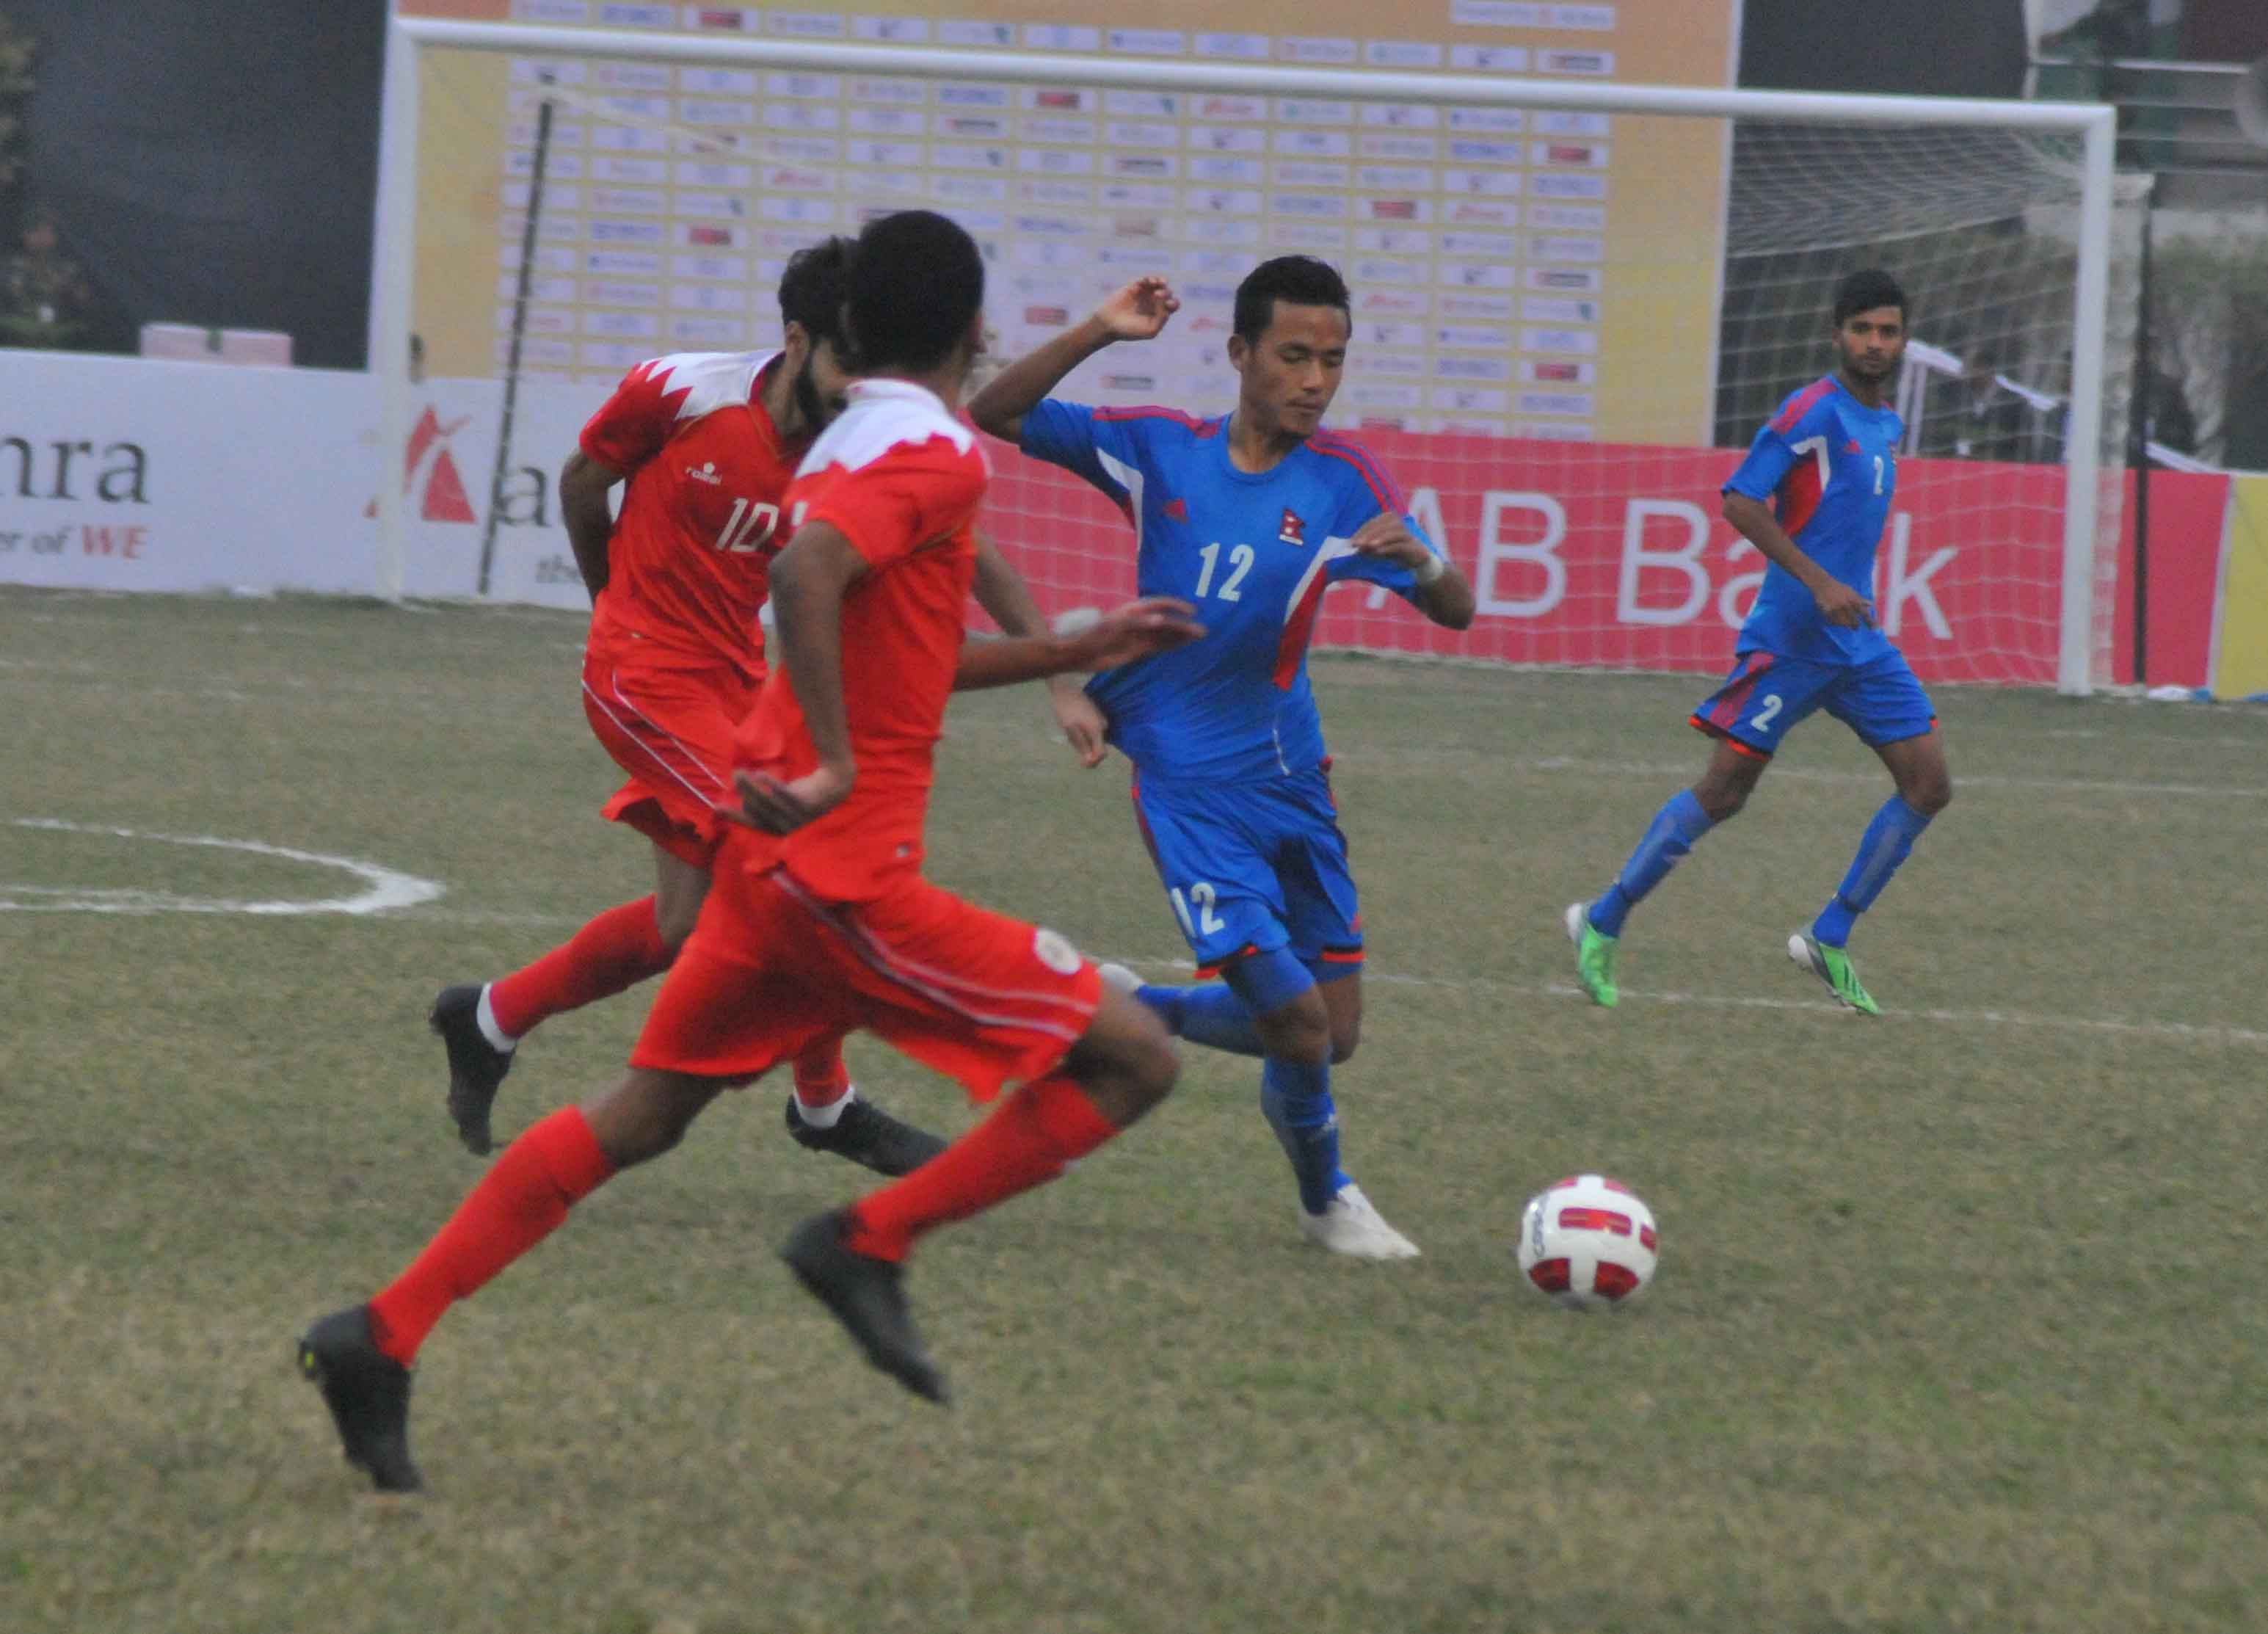 Nepal(Blue)  Vs  Bahrain(Red)Final Match g